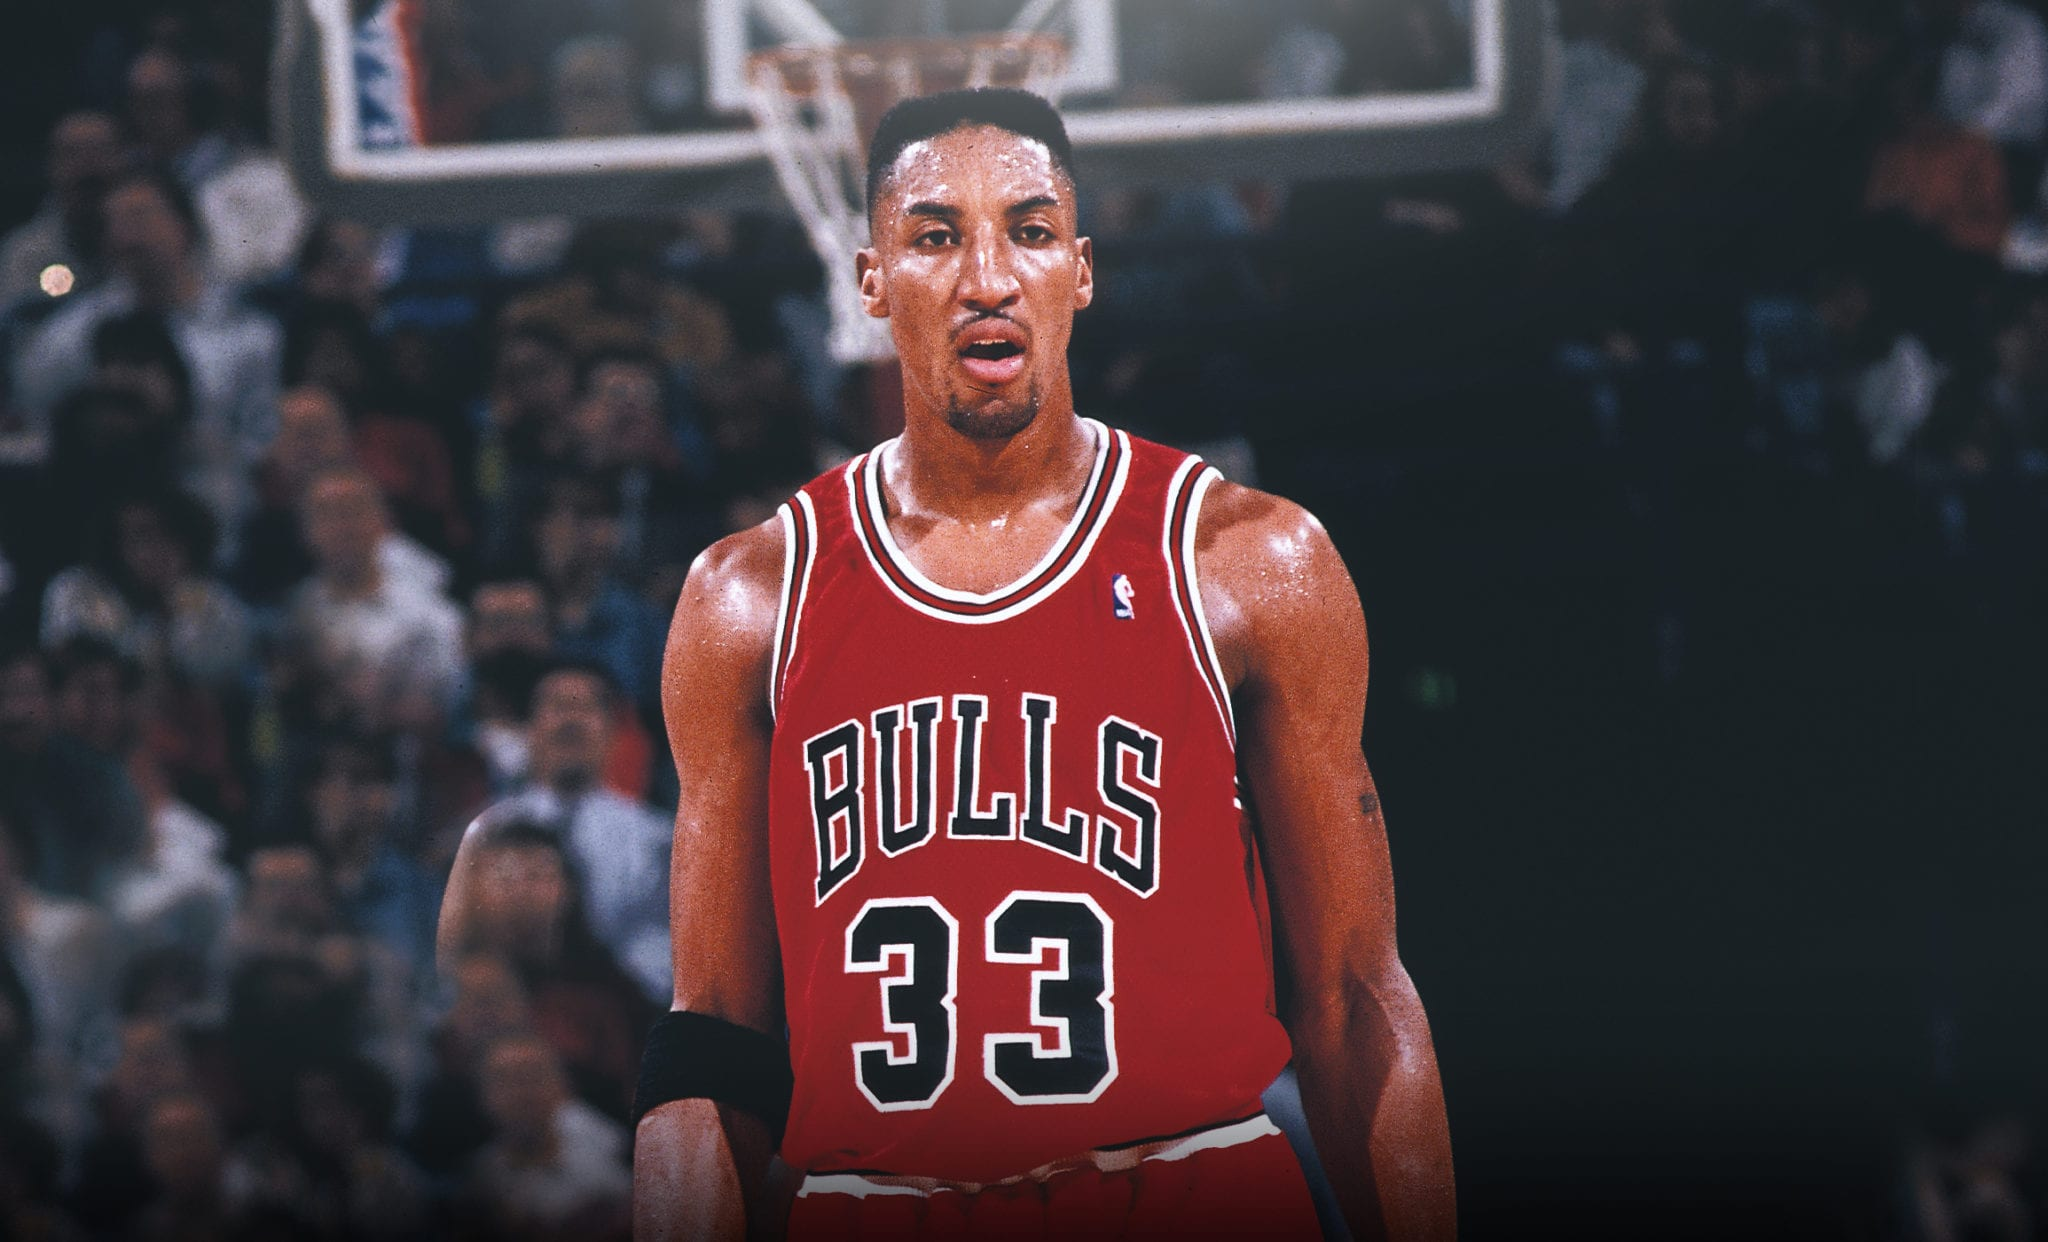 Everything You Need to Know About Scotty Pippen's Terrible Bulls Contract